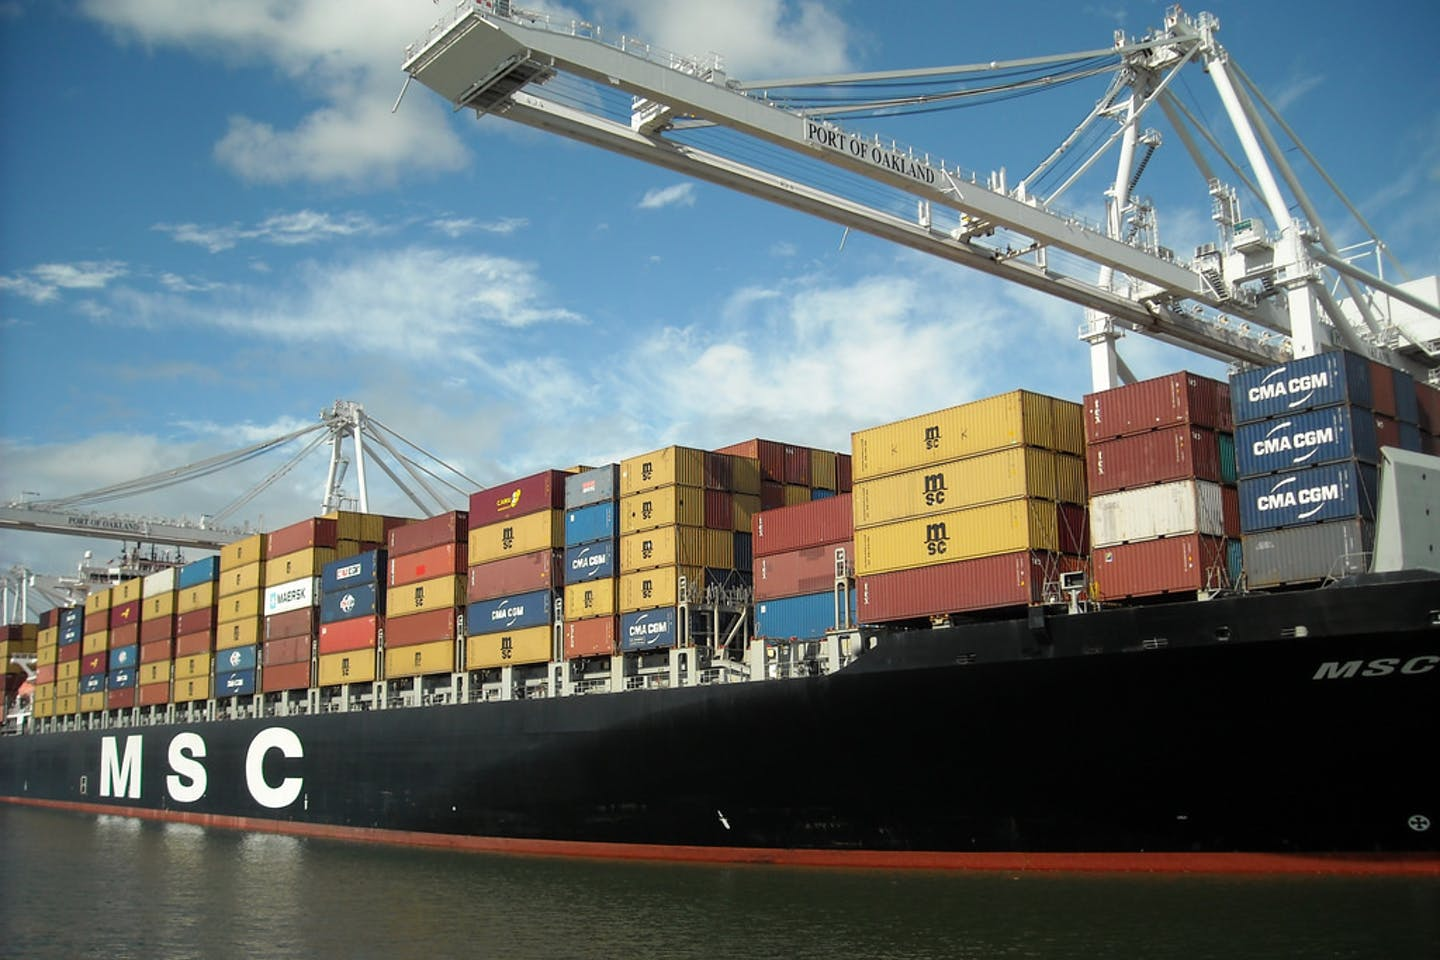 A container ship msc